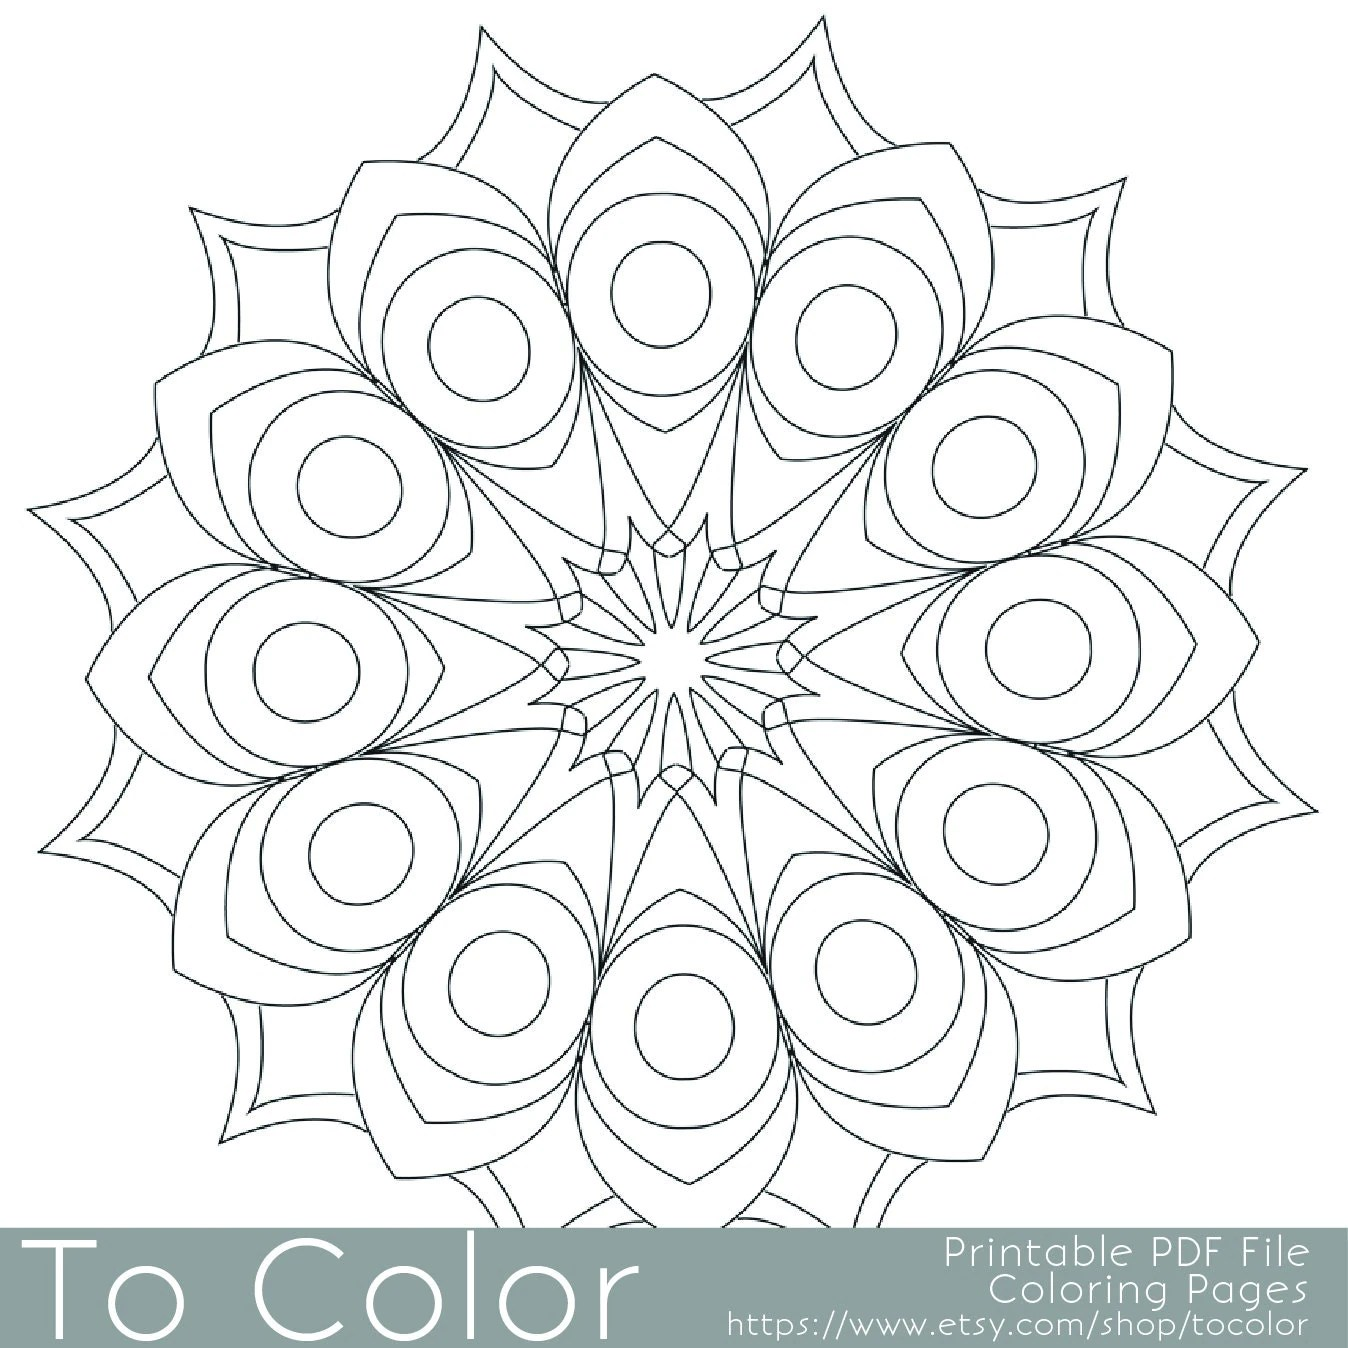 Printable Circular Mandala Easy Coloring Pages for Adults Big   free printable mandala coloring pages for adults easy